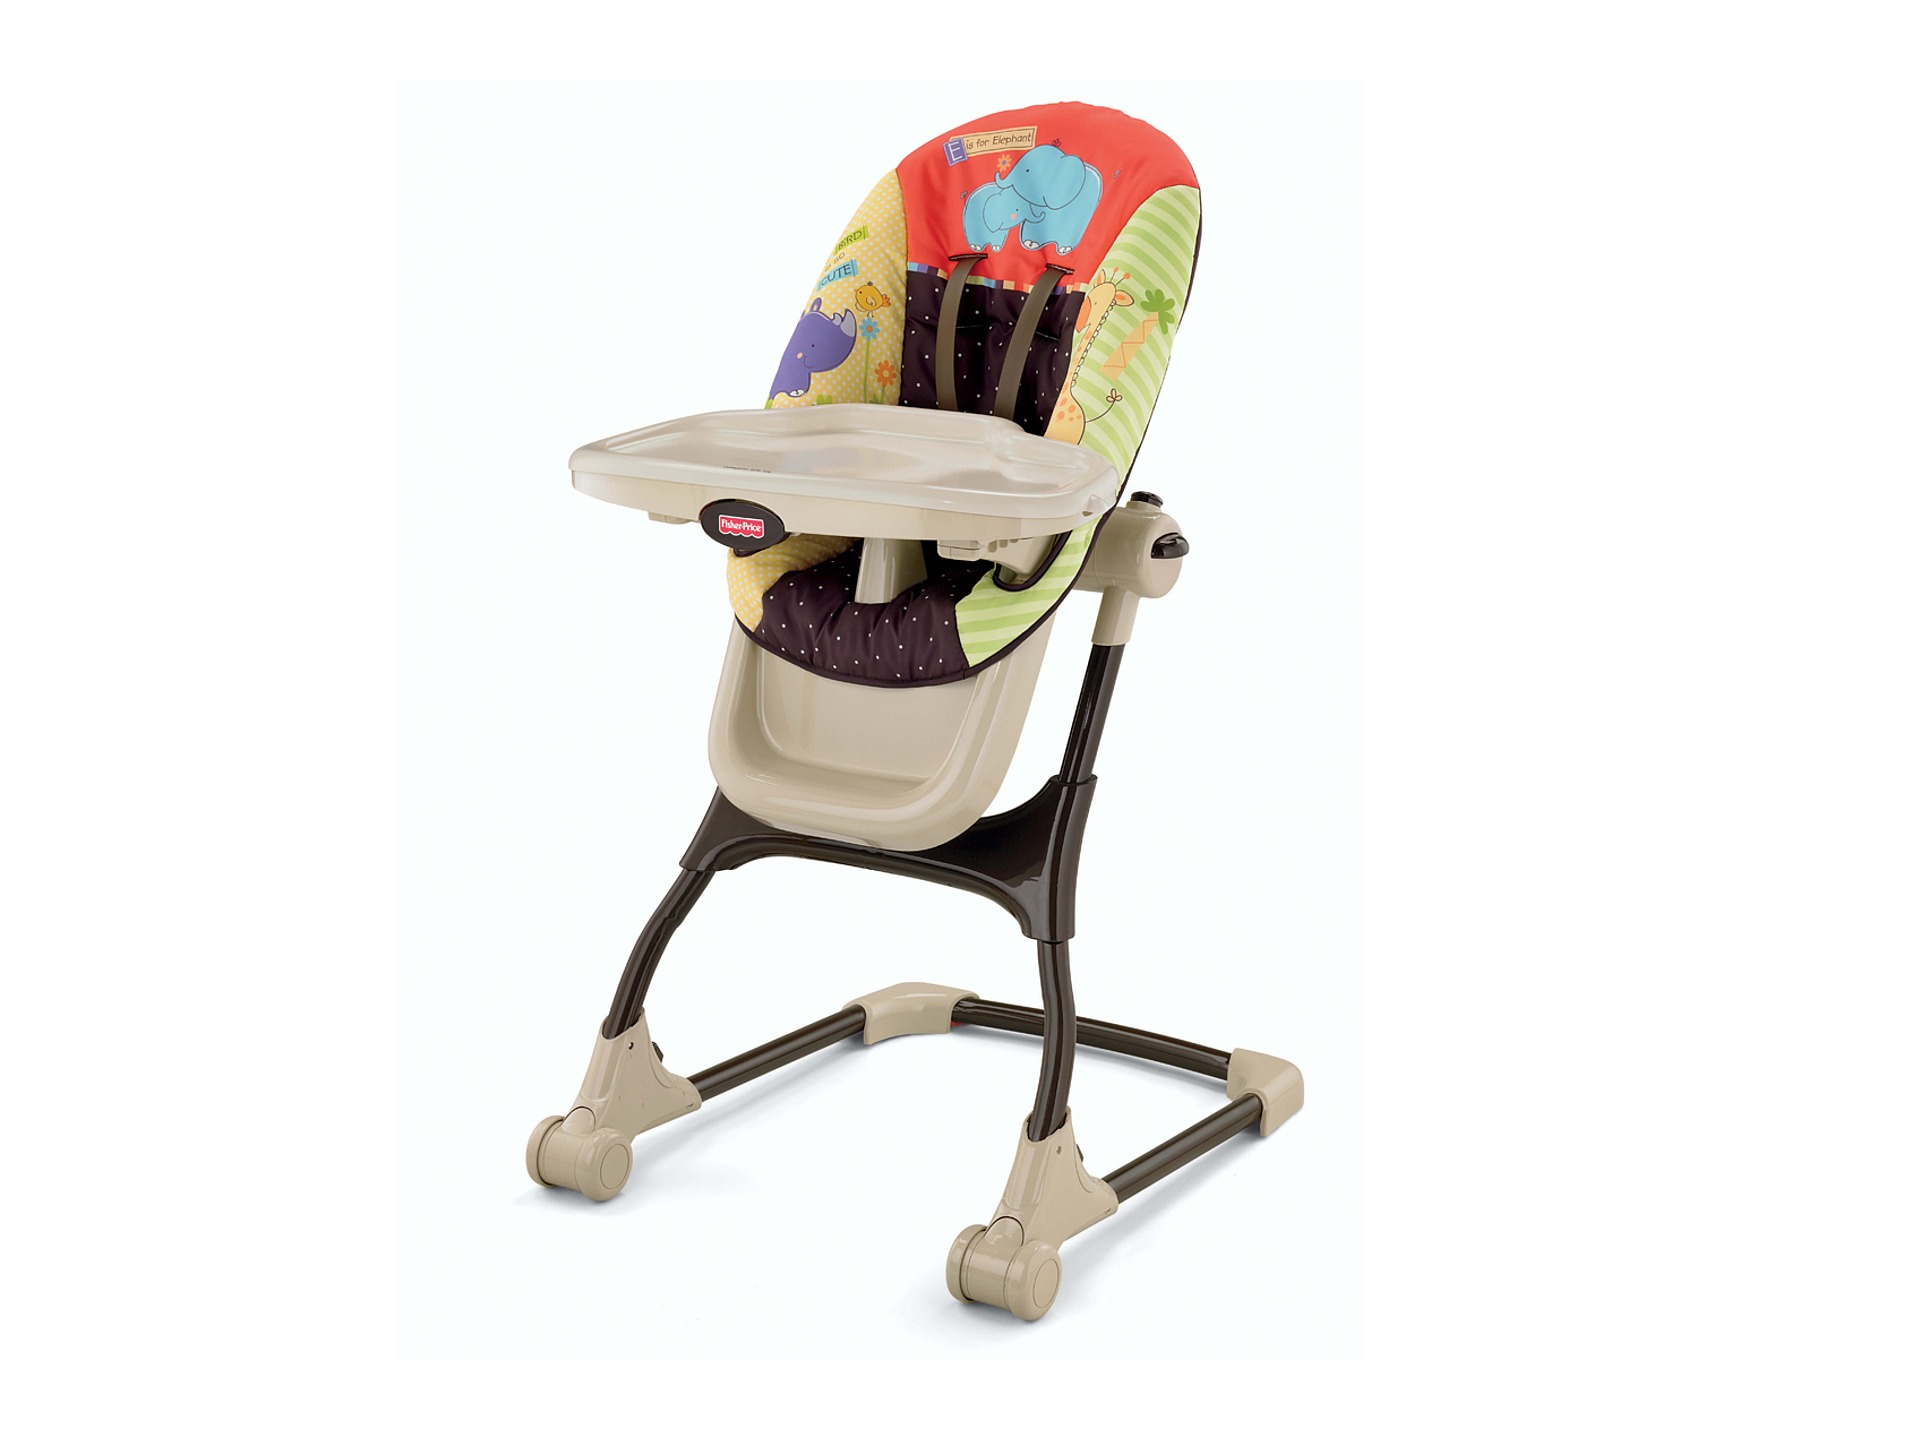 Fisher price ez clean high chair zappos com free shipping both ways